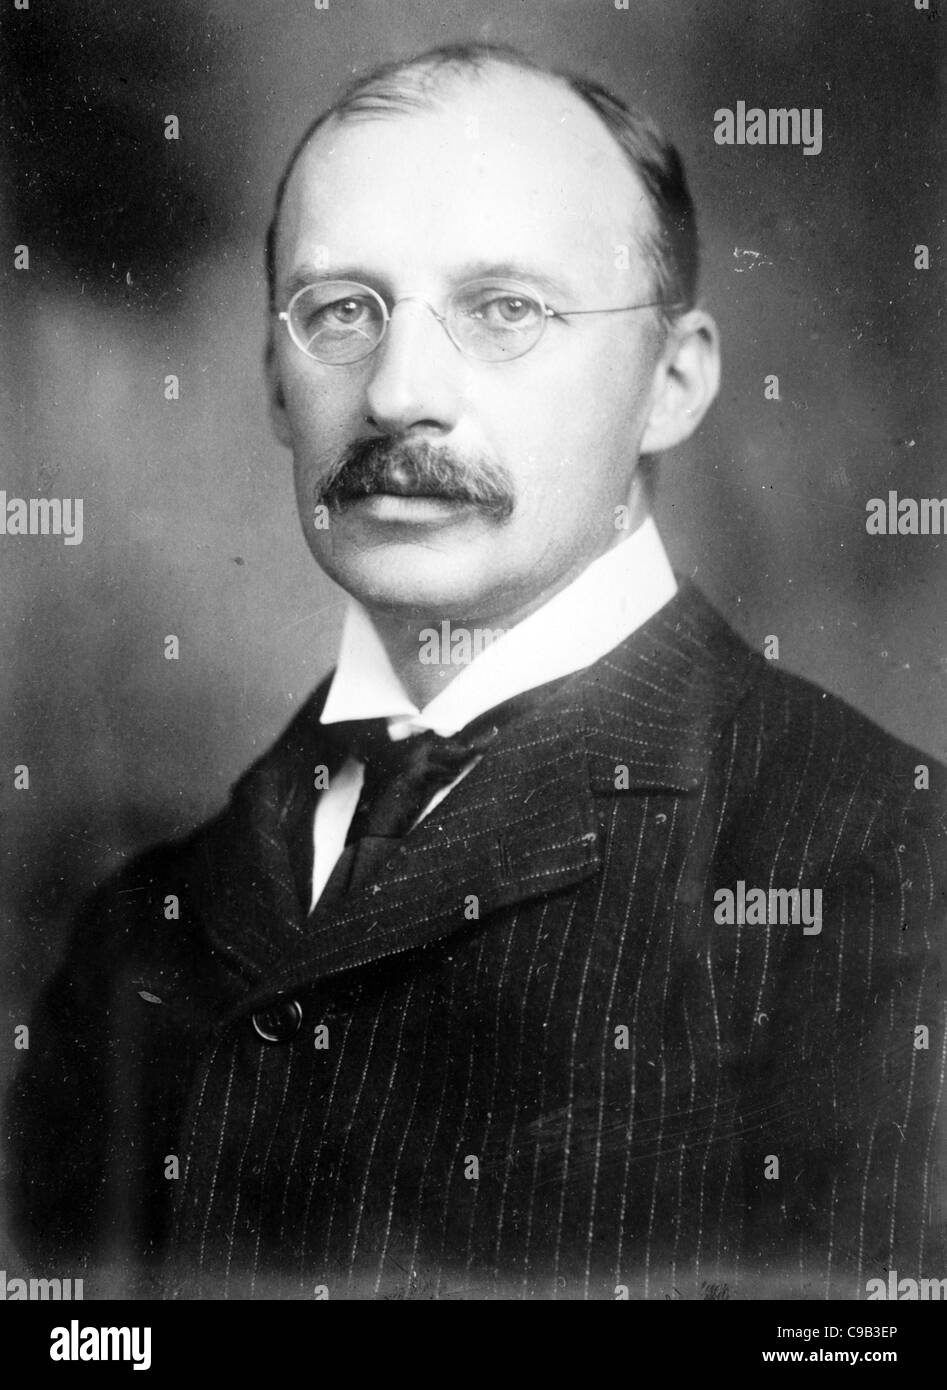 Sir Cecil Arthur Spring-Rice, was a British diplomat who served as British Ambassador to the United States from - Stock Image